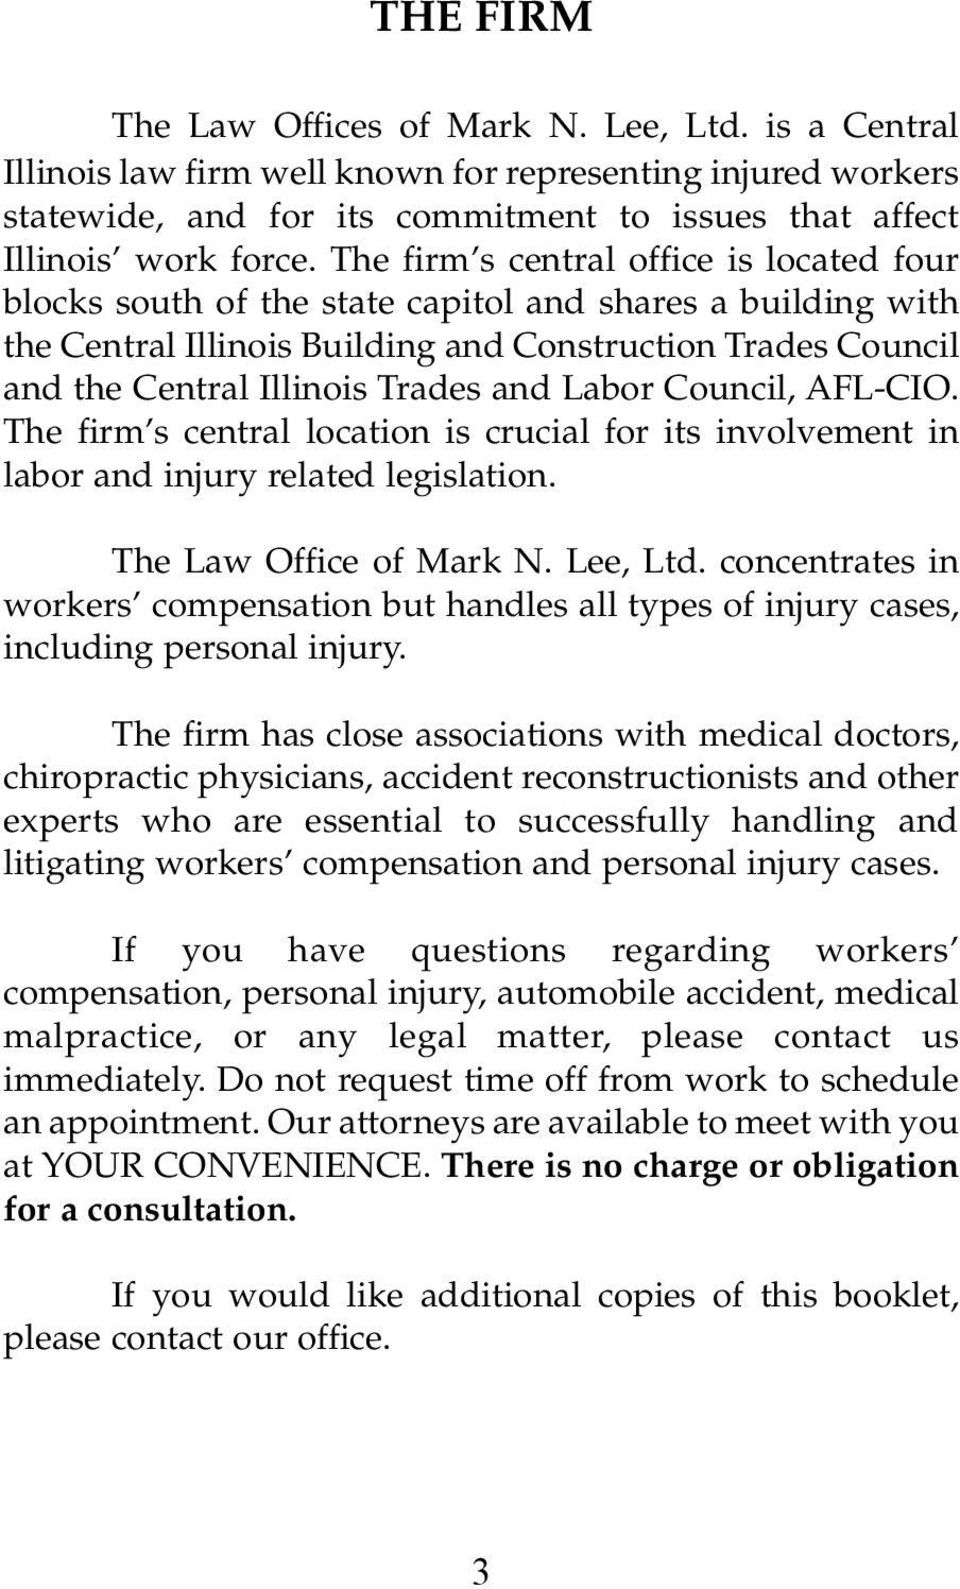 and Labor Council, AFL-CIO. The firm s central location is crucial for its involvement in labor and injury related legislation. The Law Office of Mark N. Lee, Ltd.